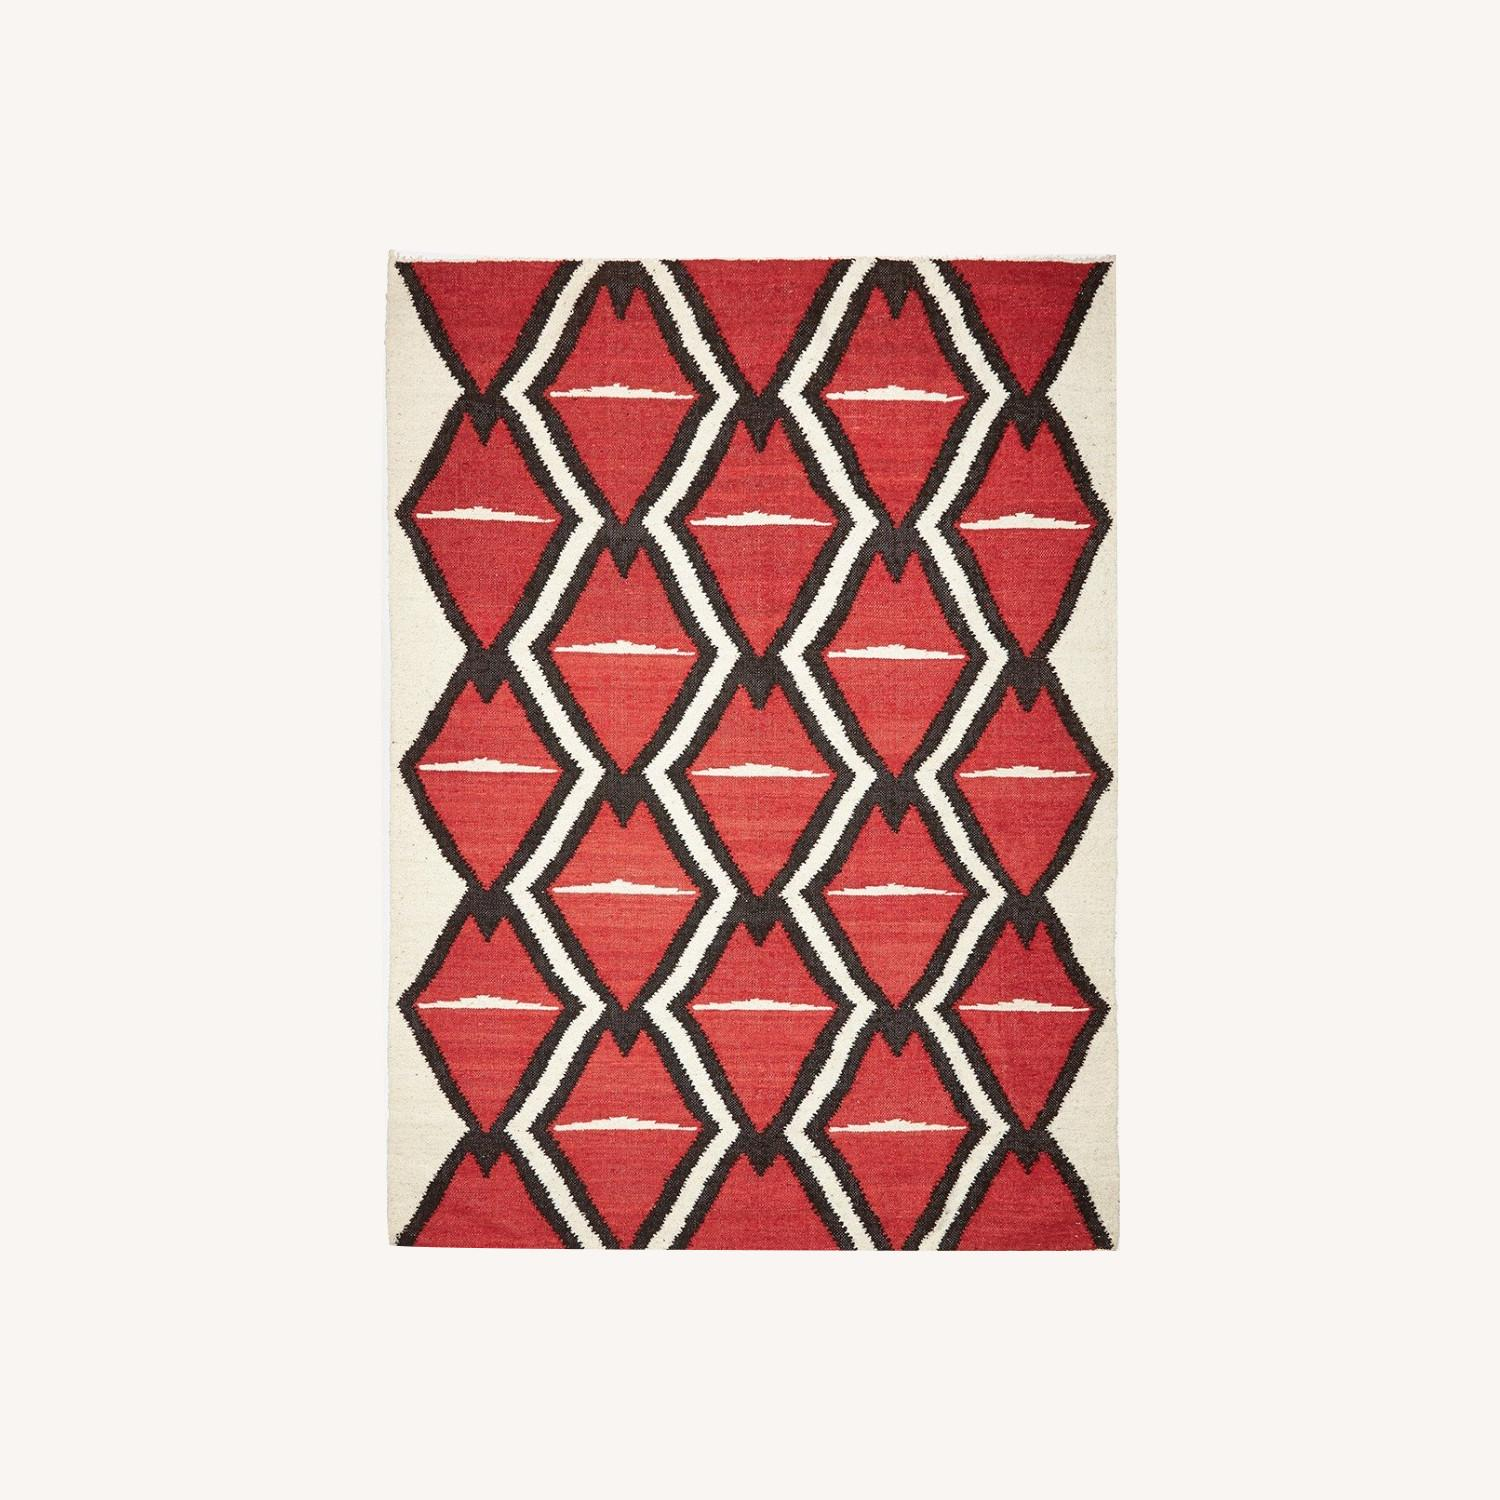 Artisan Rug featured in Elle Decor - image-0